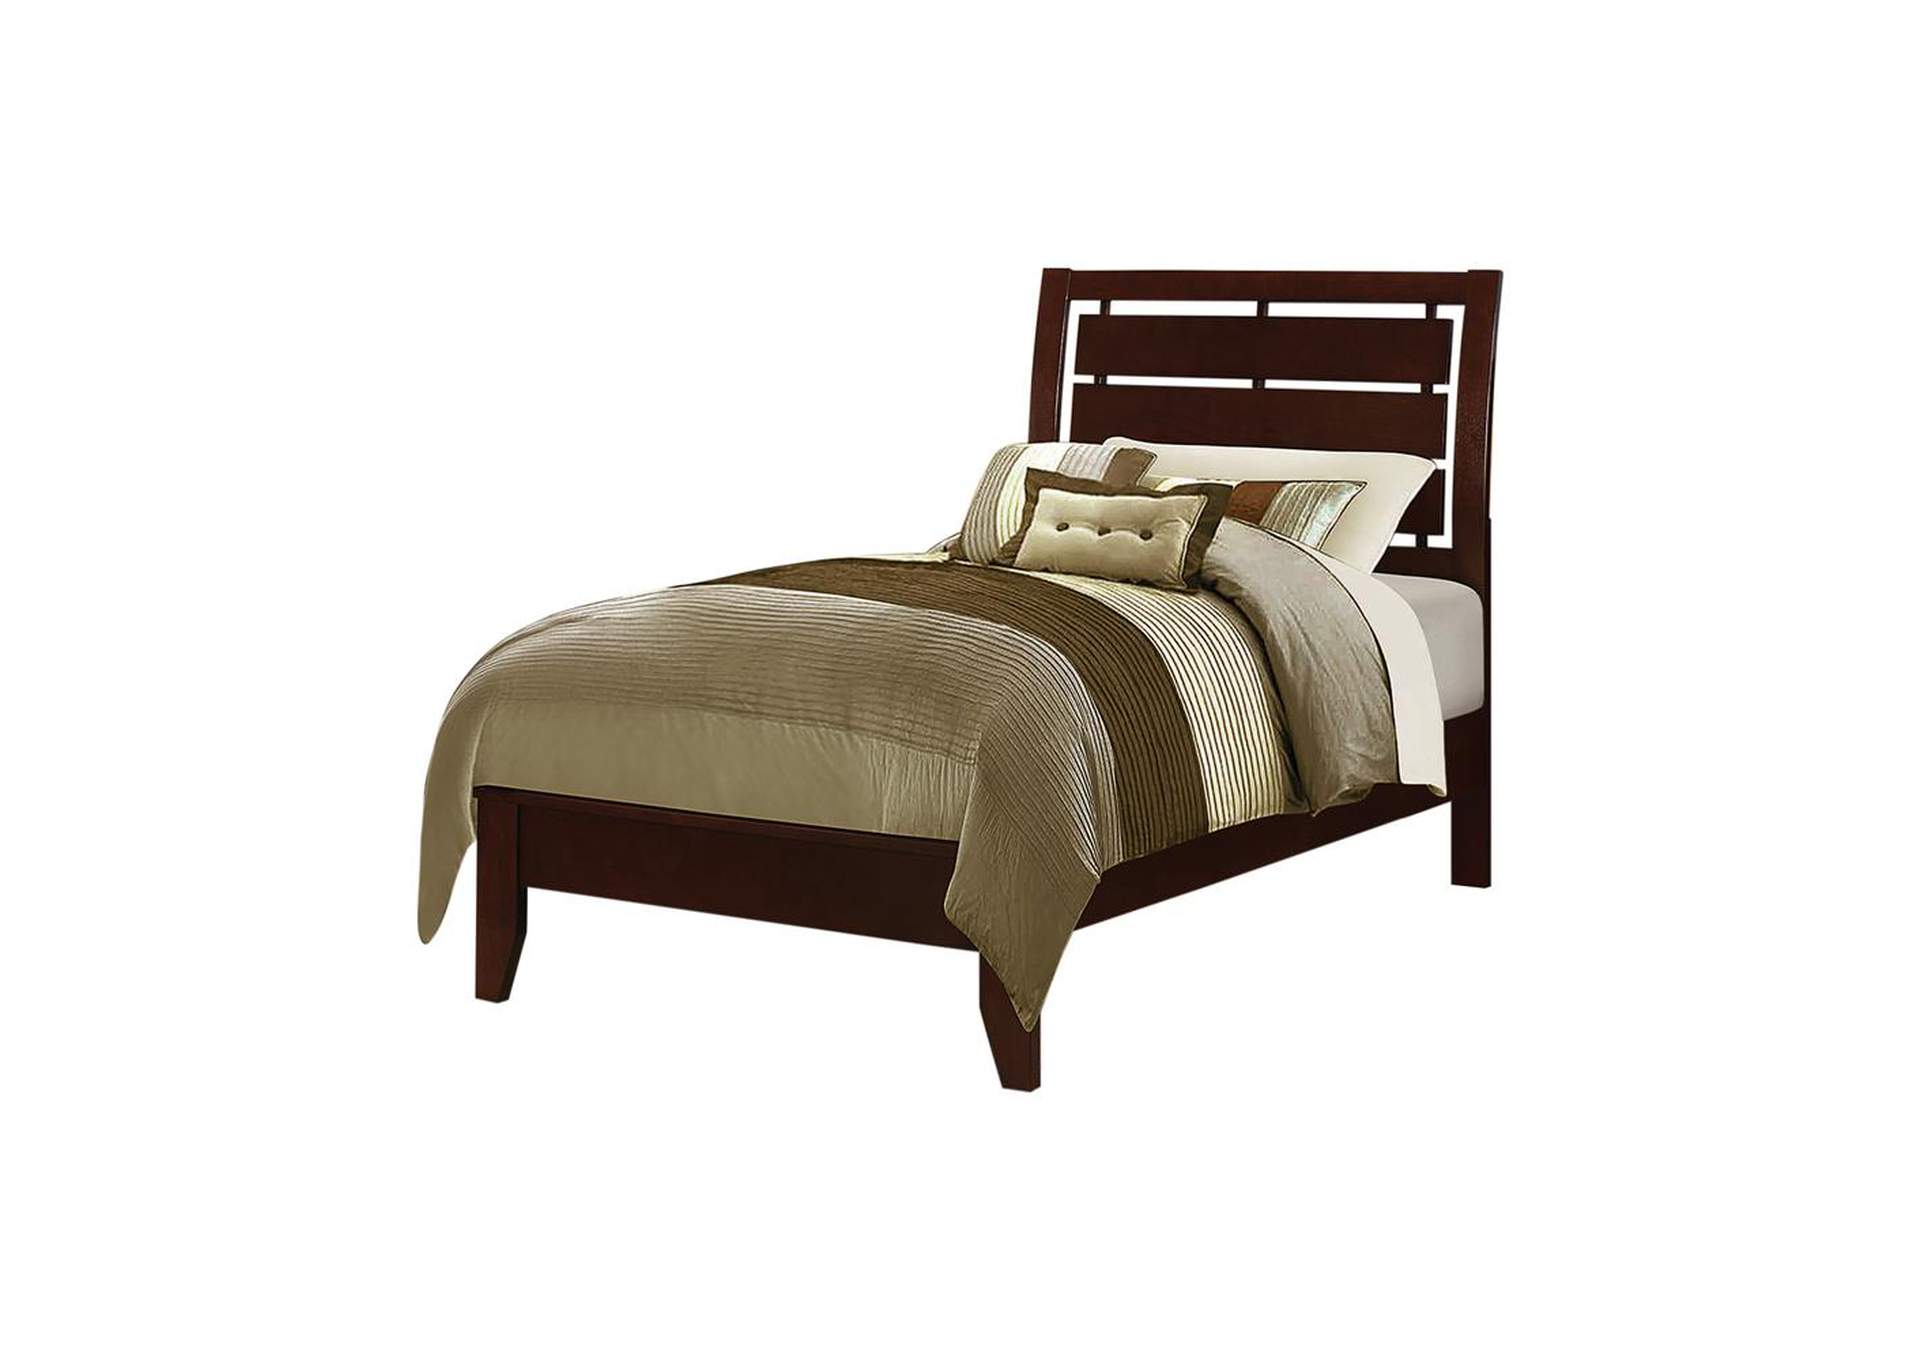 Serenity Twin Bed Rich Merlot,Coaster Furniture